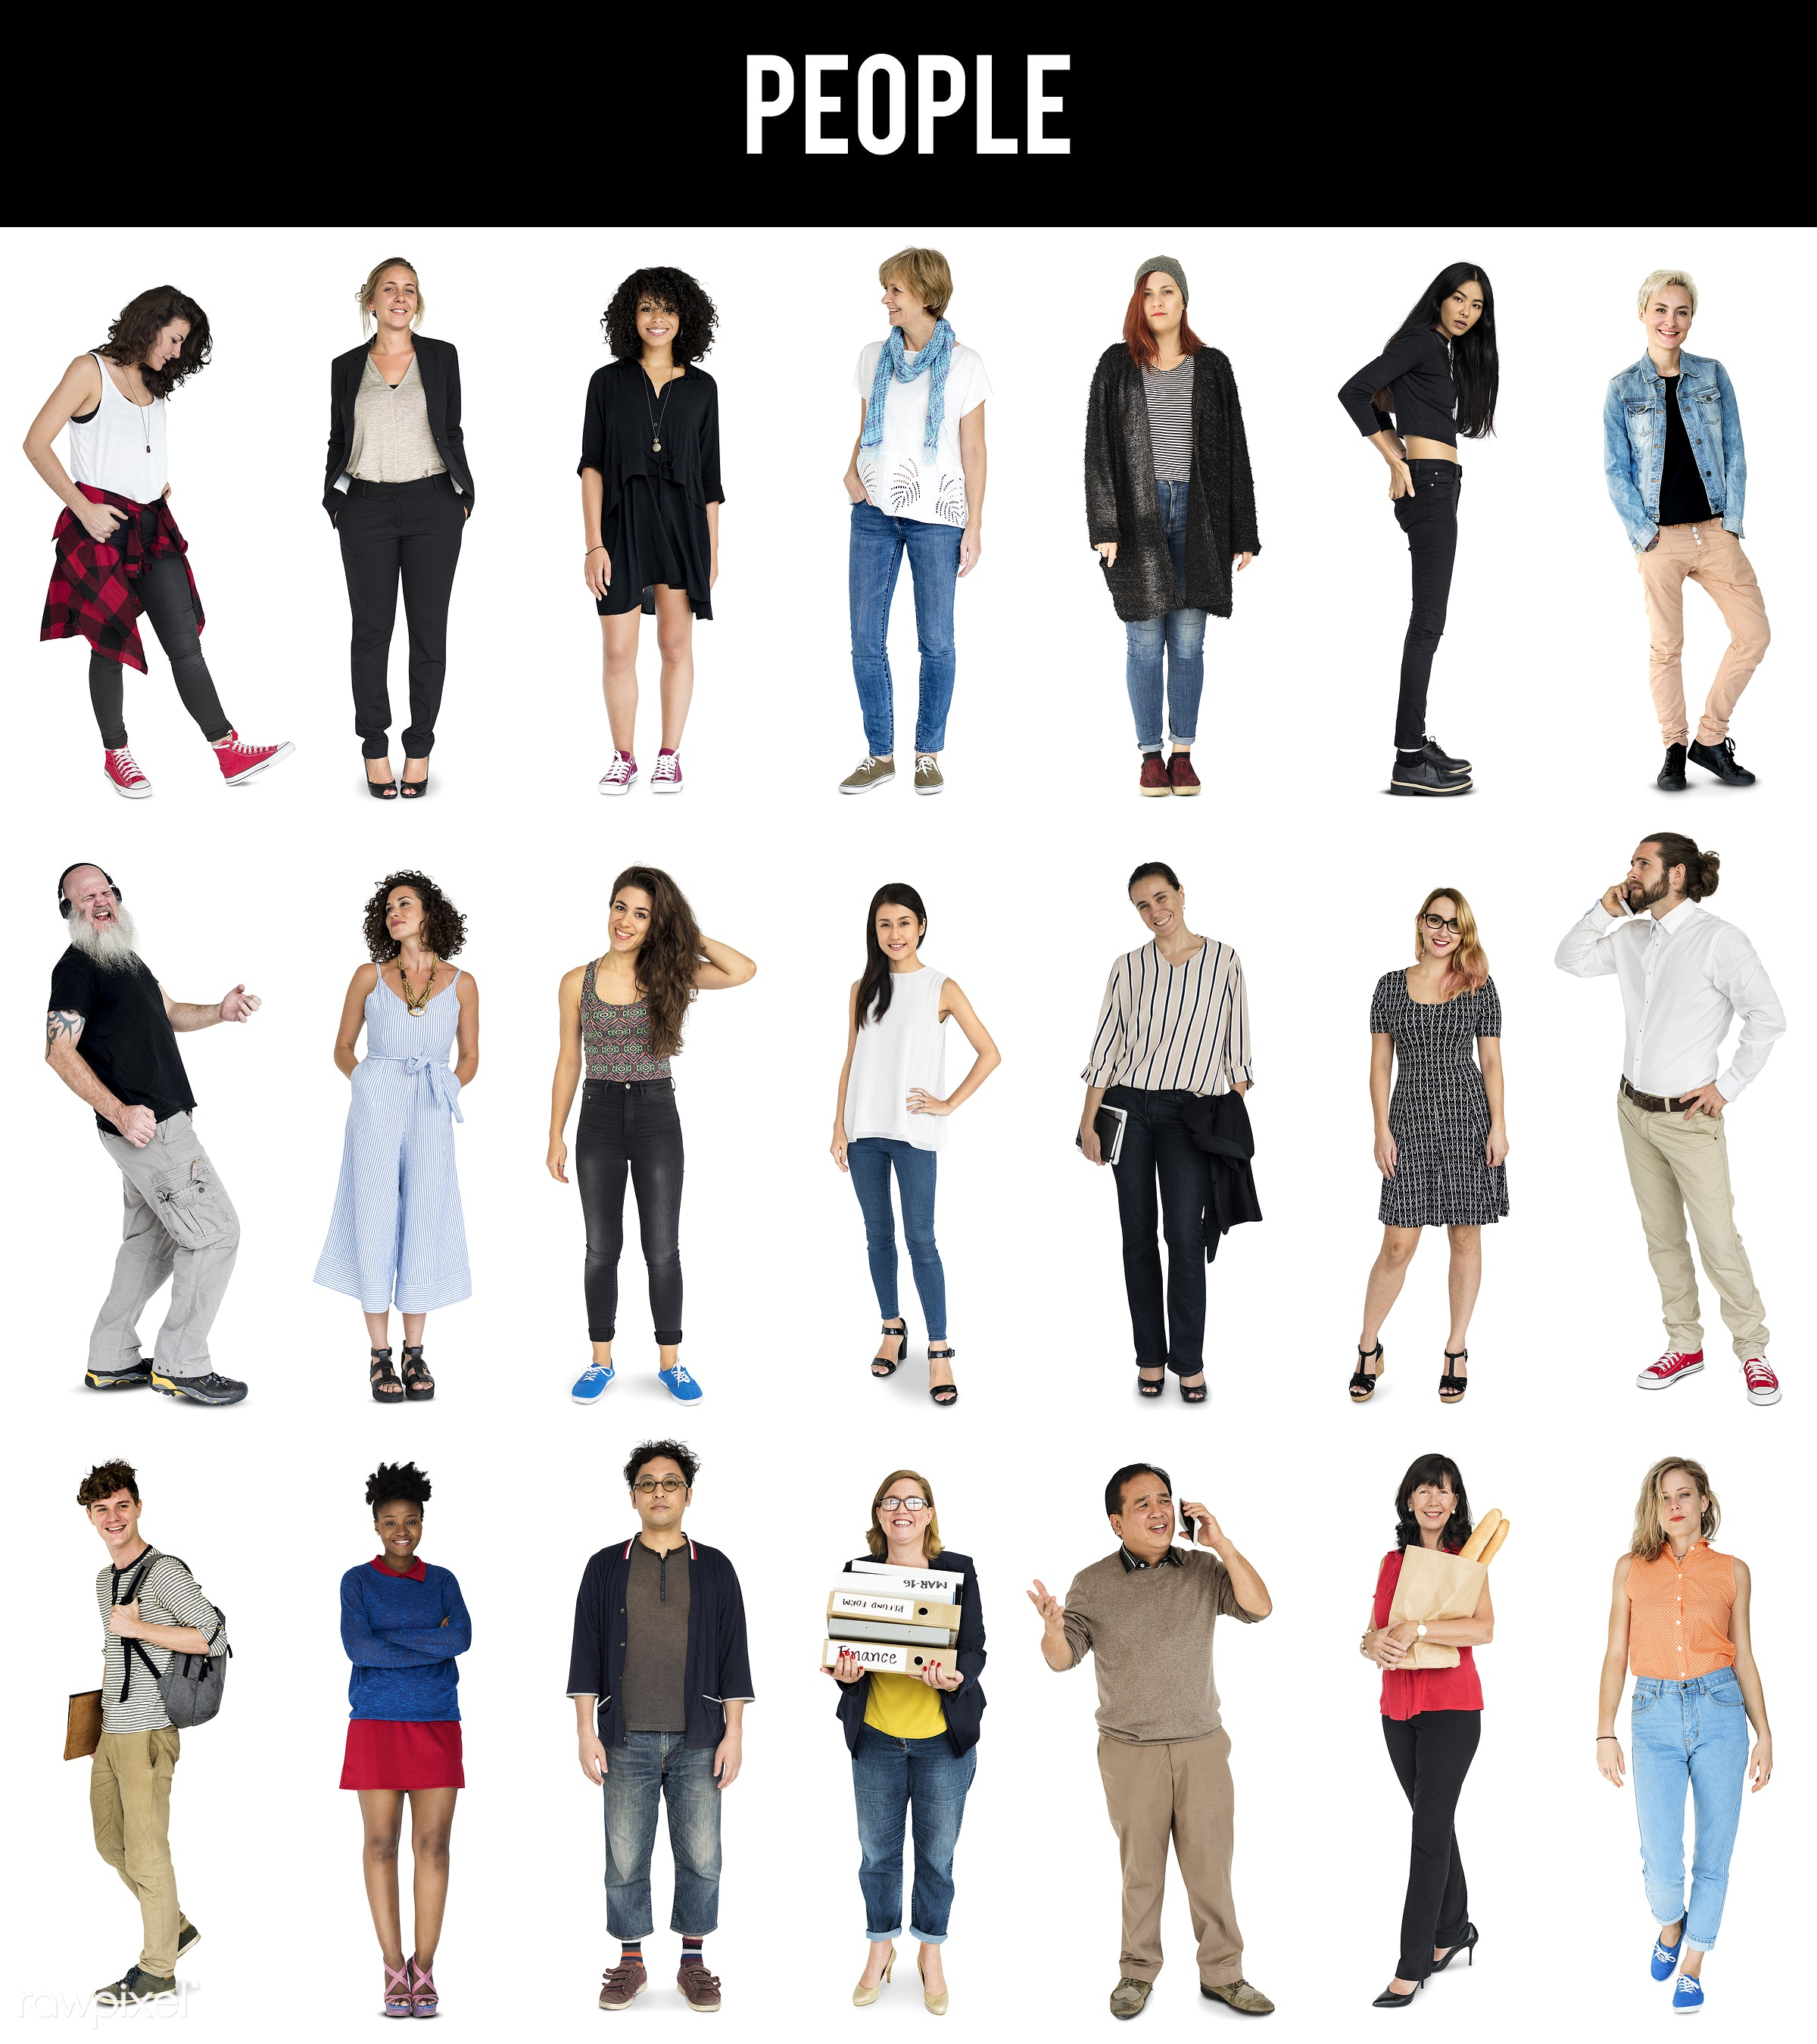 expression, full length, diverse, personality, people, race, caucasian, asian, woman, social, age, lifestyle, studio...